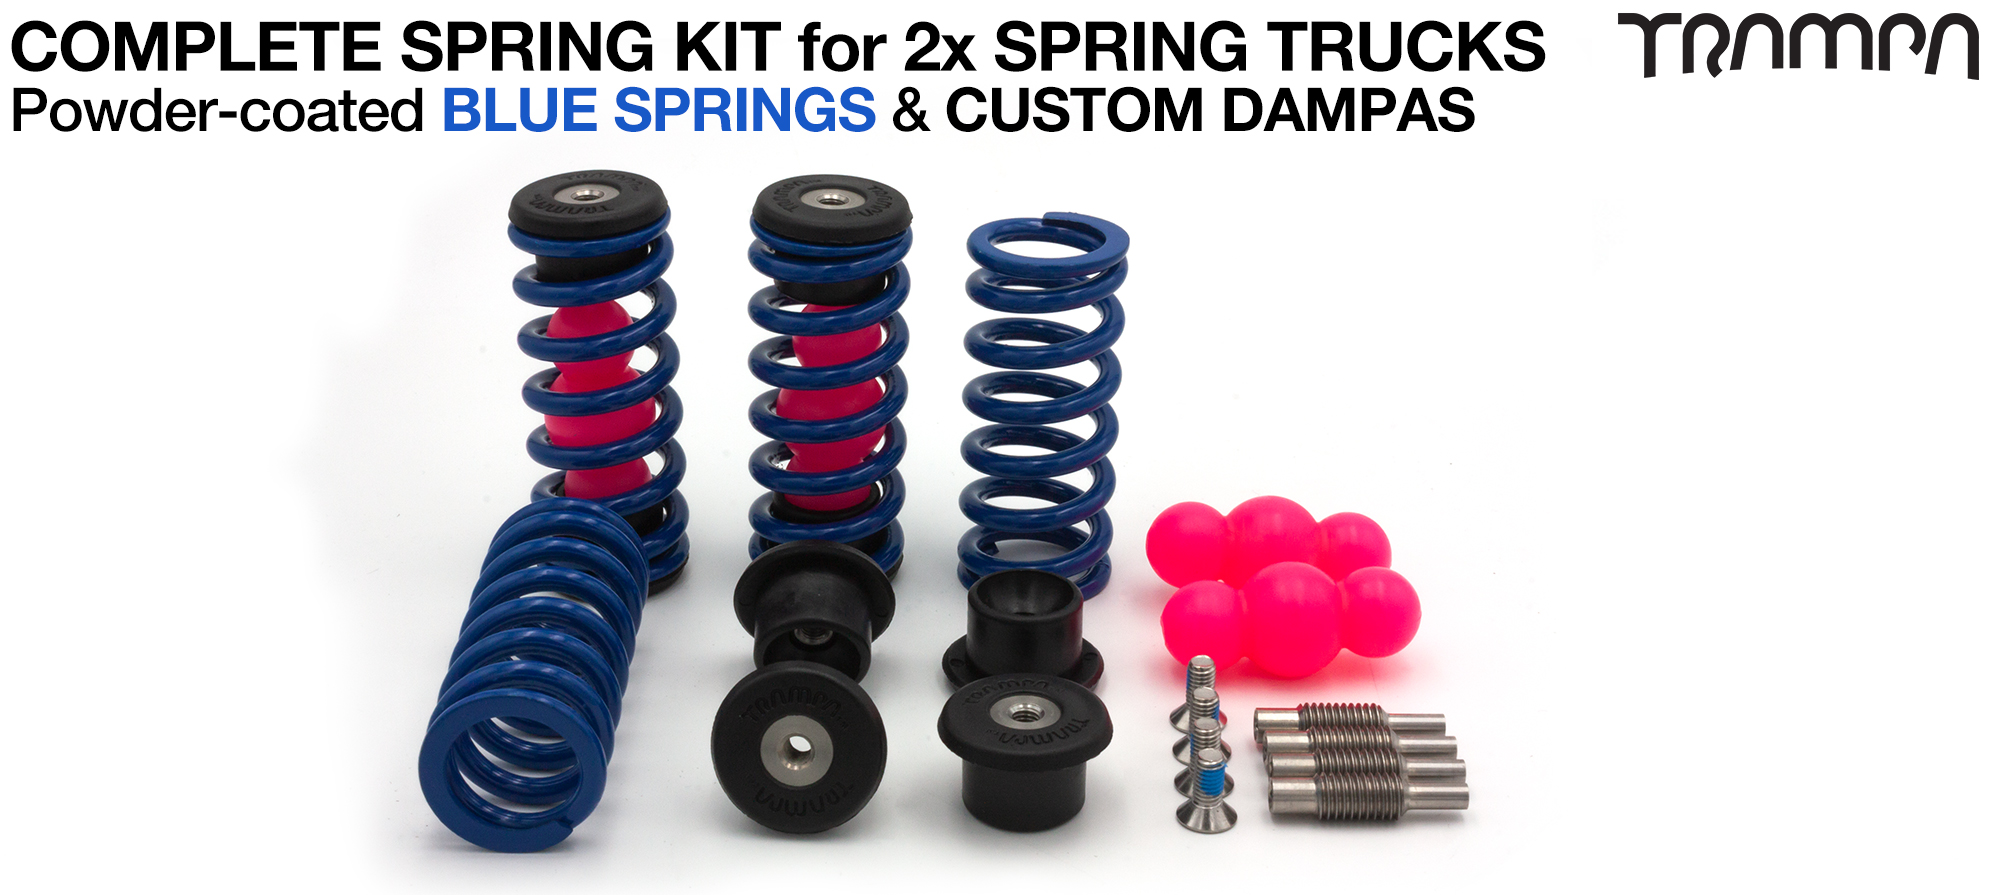 Powder Coated Springs - BLUE